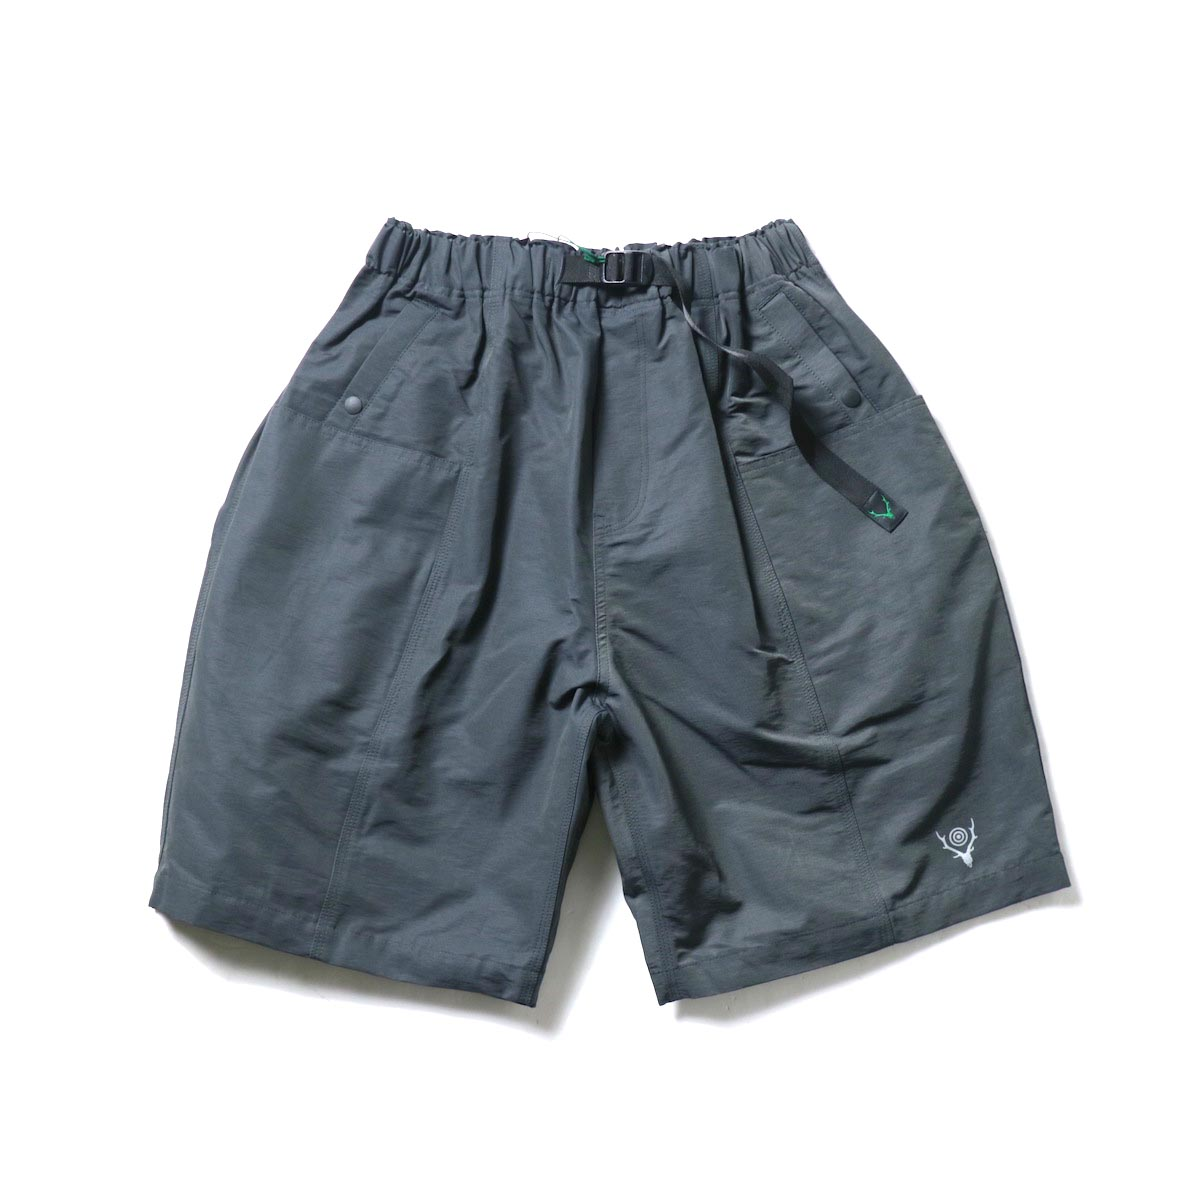 South2 West8 / BELTED C.S. SHORT - C/N GROSGRAIN (Charcoal)